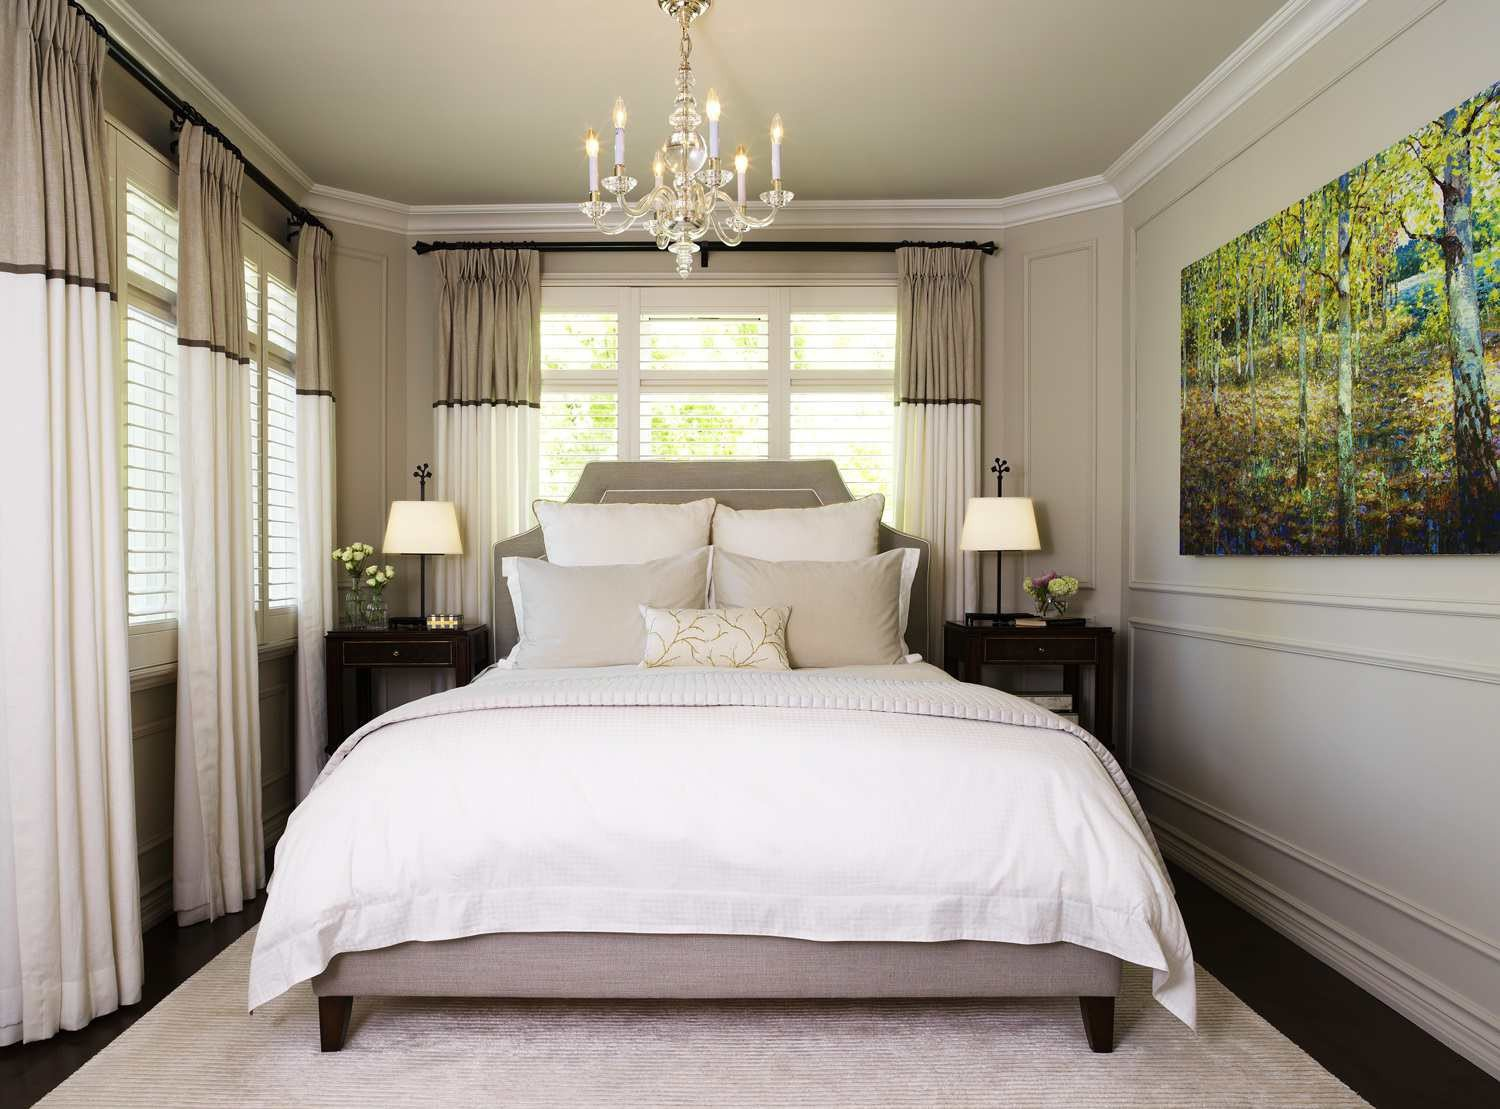 12x12 Bedroom Furniture Layout Awesome Small Master Bedroom Design Ideas Tips and S